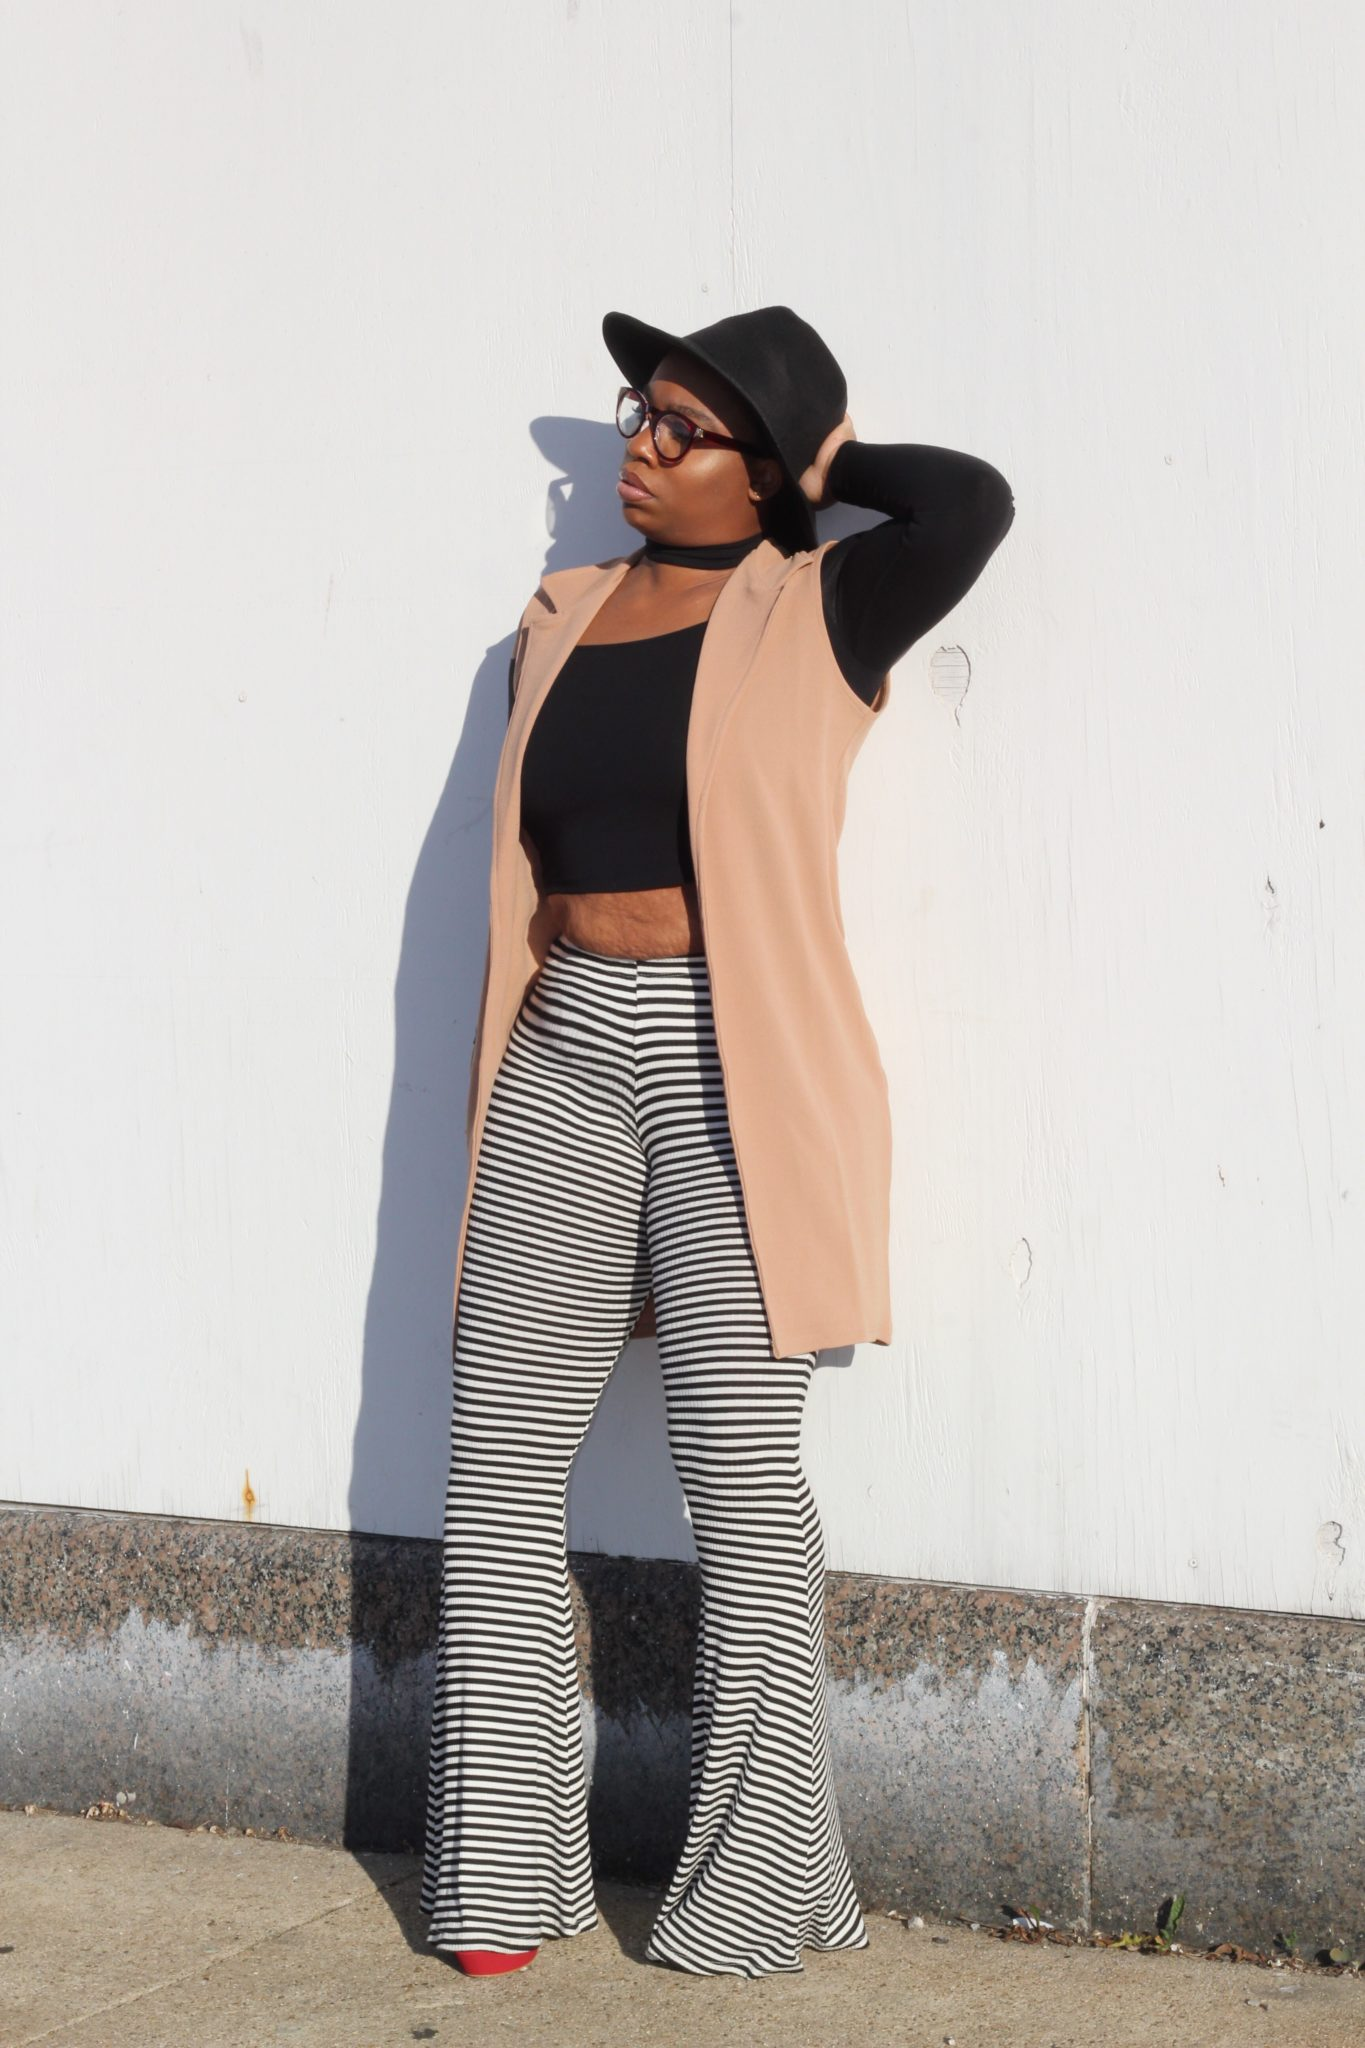 publish_snapshot-58 Shopping Bare/The StylistAmerican Apparel Boohoo Fashion Fashion Nova OOTD Uncategorized